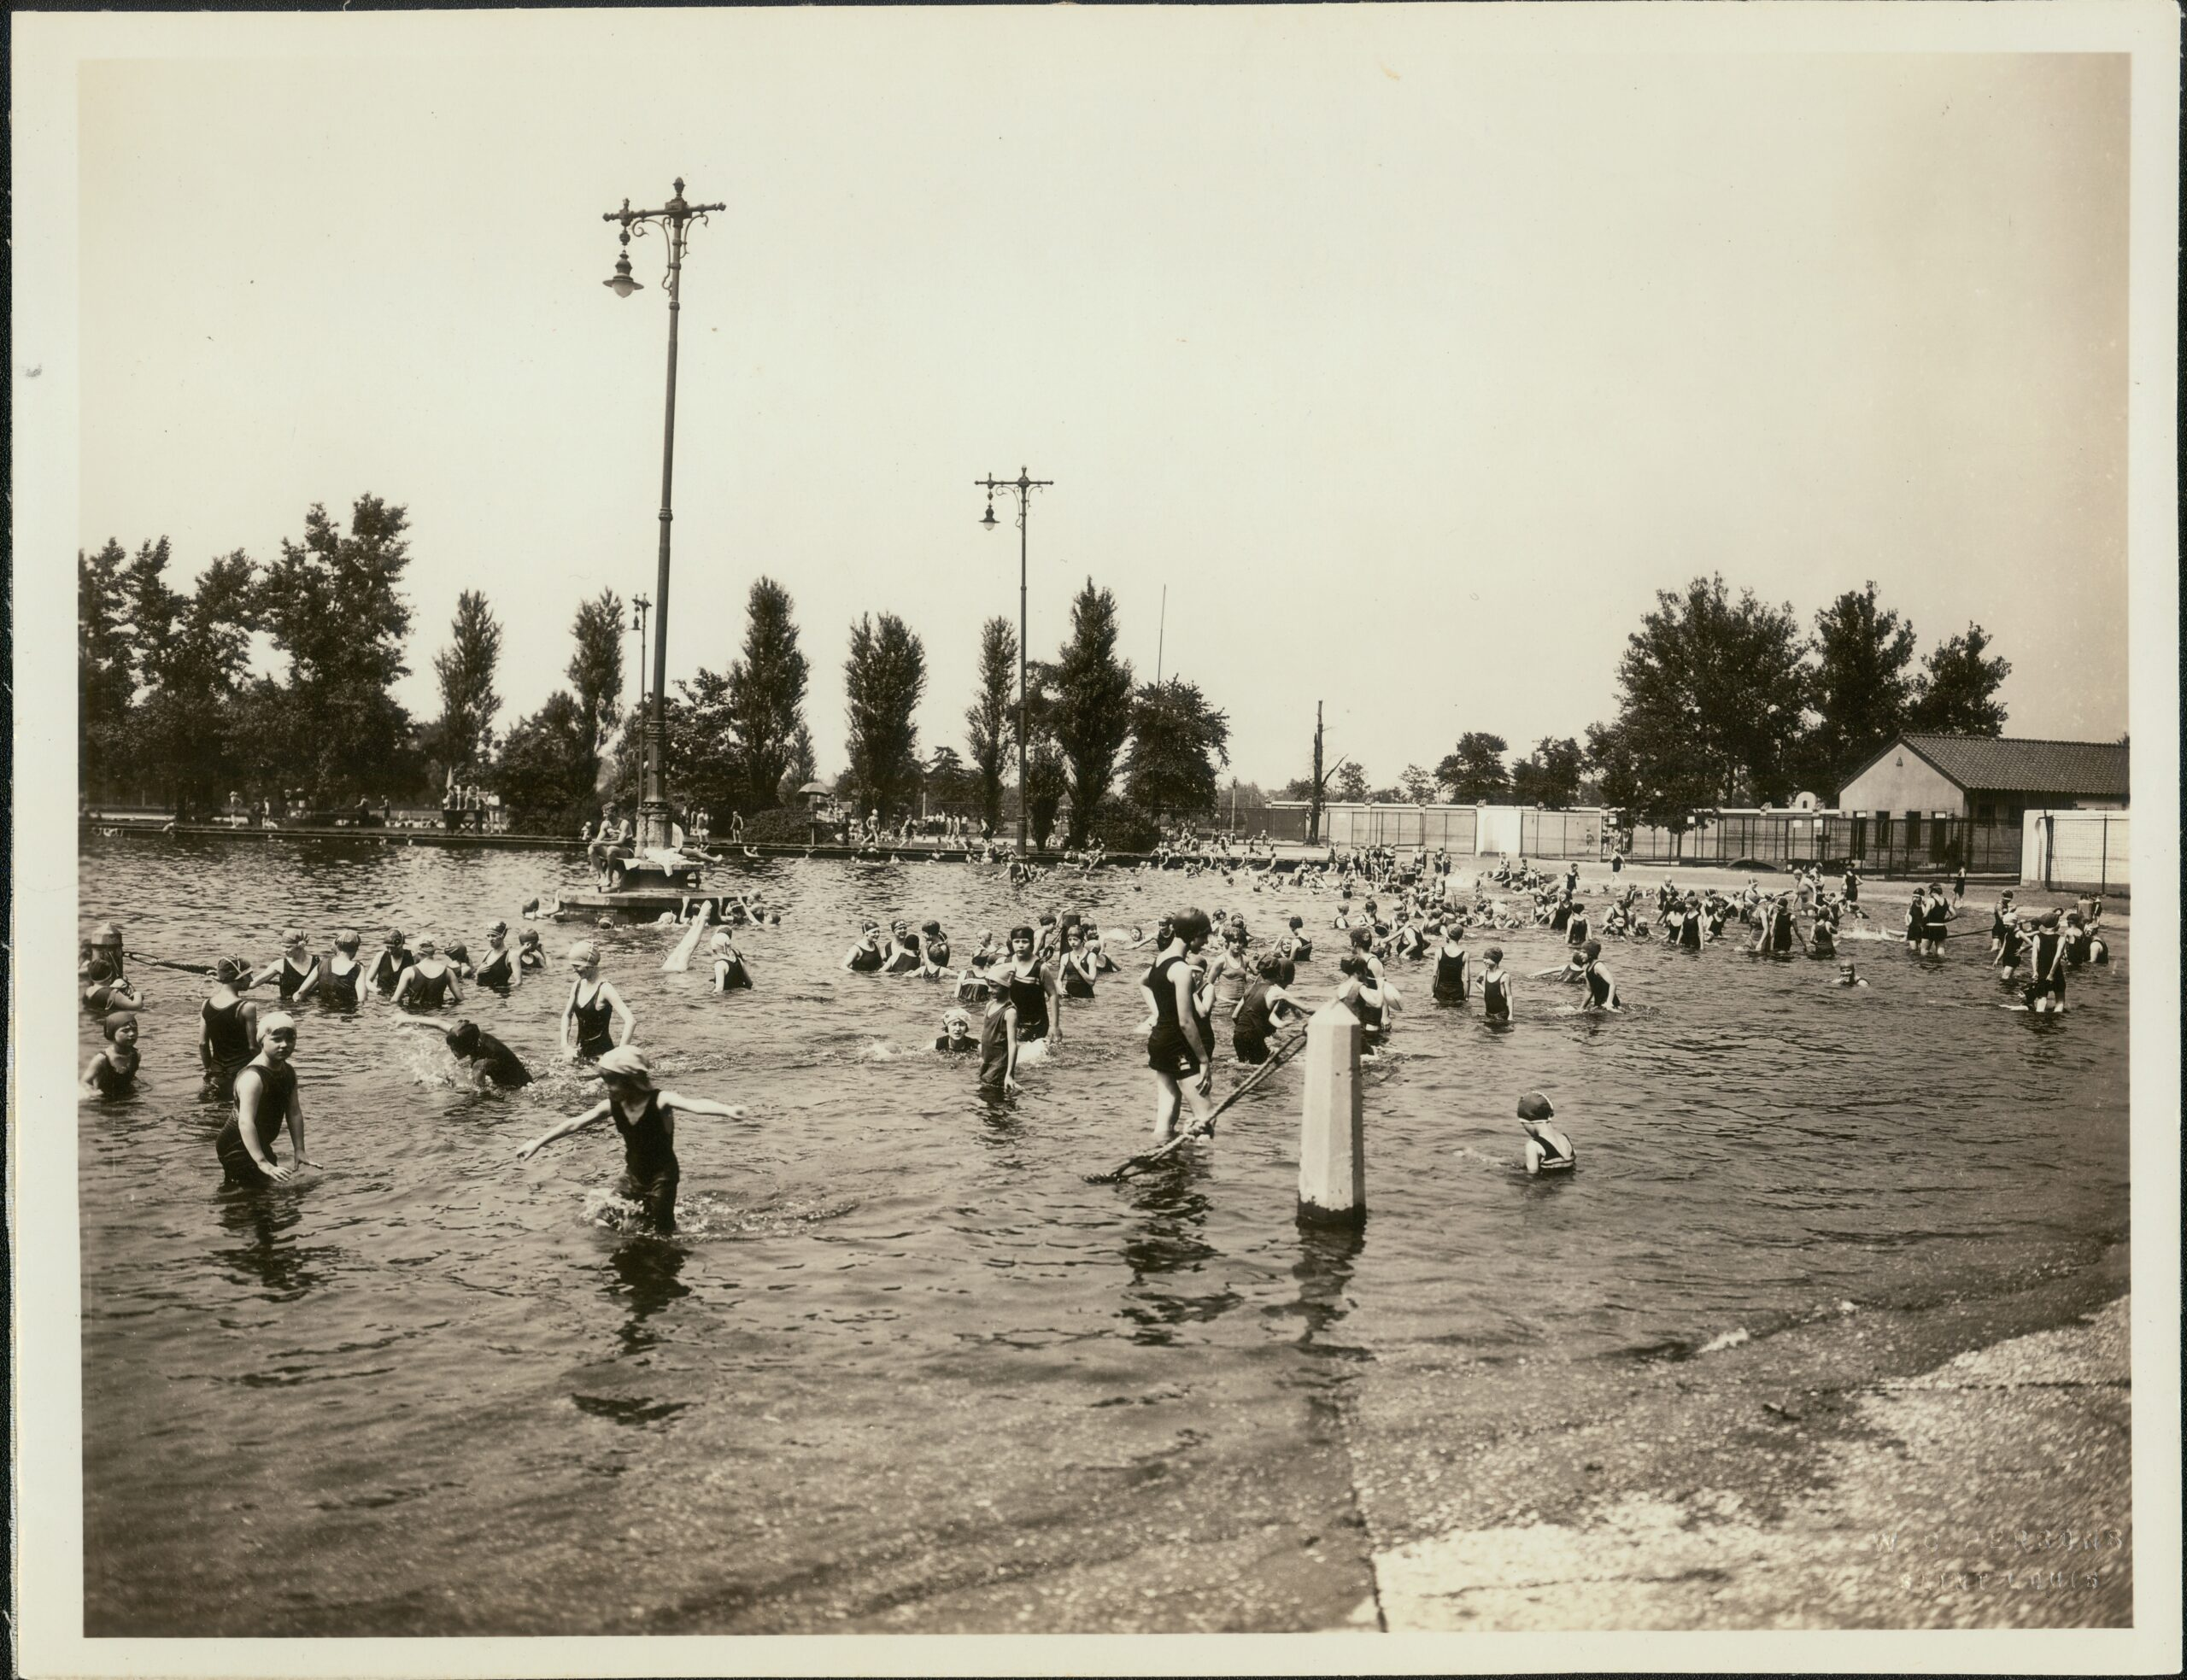 Fairground Park Pool from Wikipedia